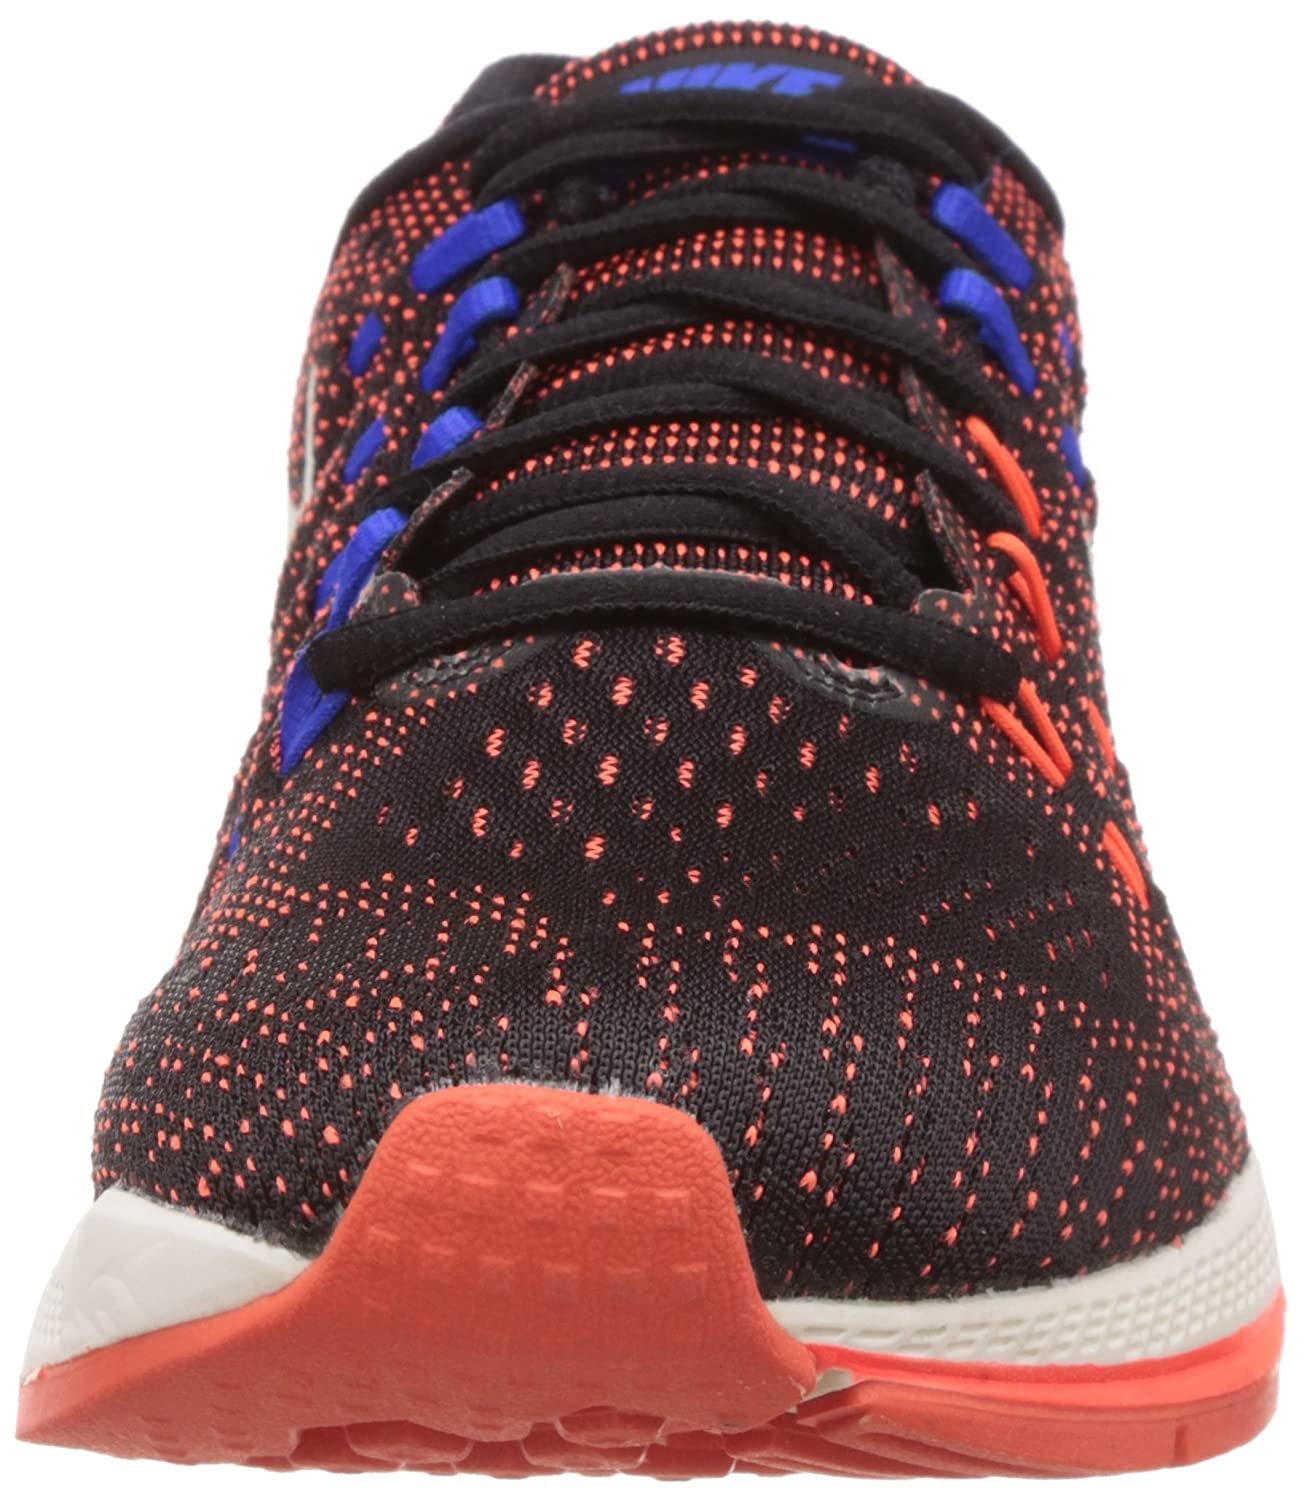 reputable site 7e17b 77164 ... Nike Mens Air Zoom Structure 19 Running Shoes Buy Online at Low Prices  in India ...